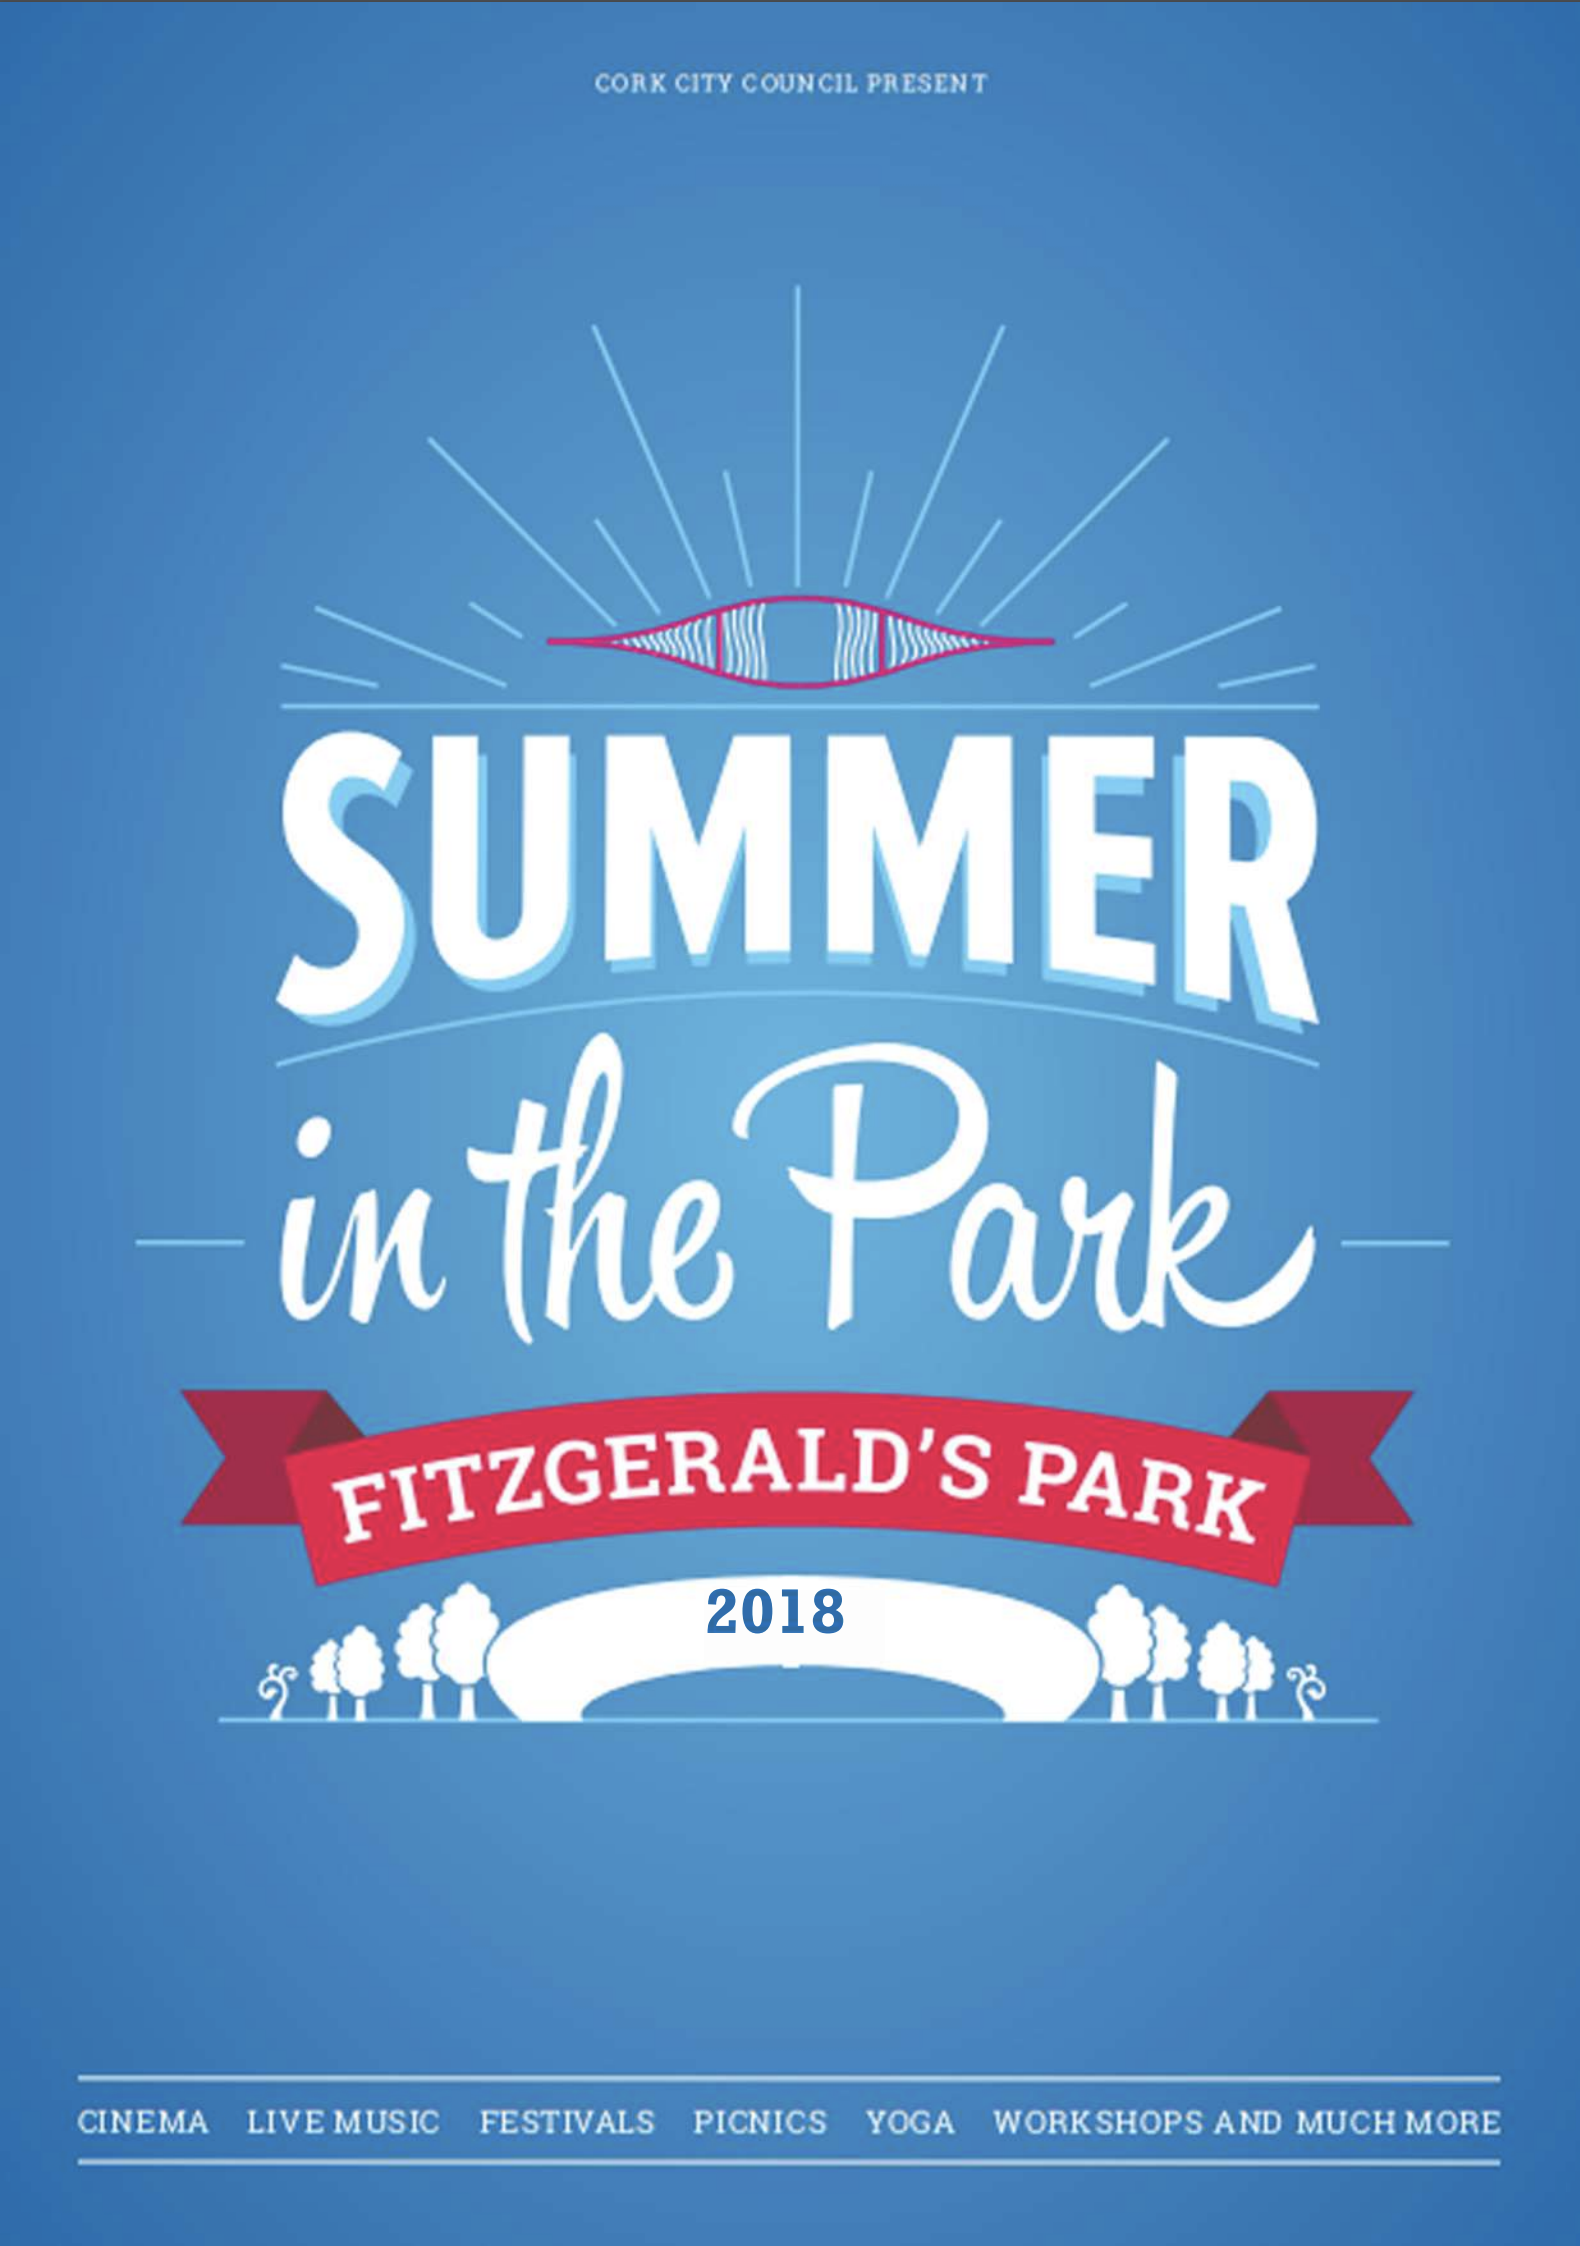 Summer in the Park- Fitzgerald's Park